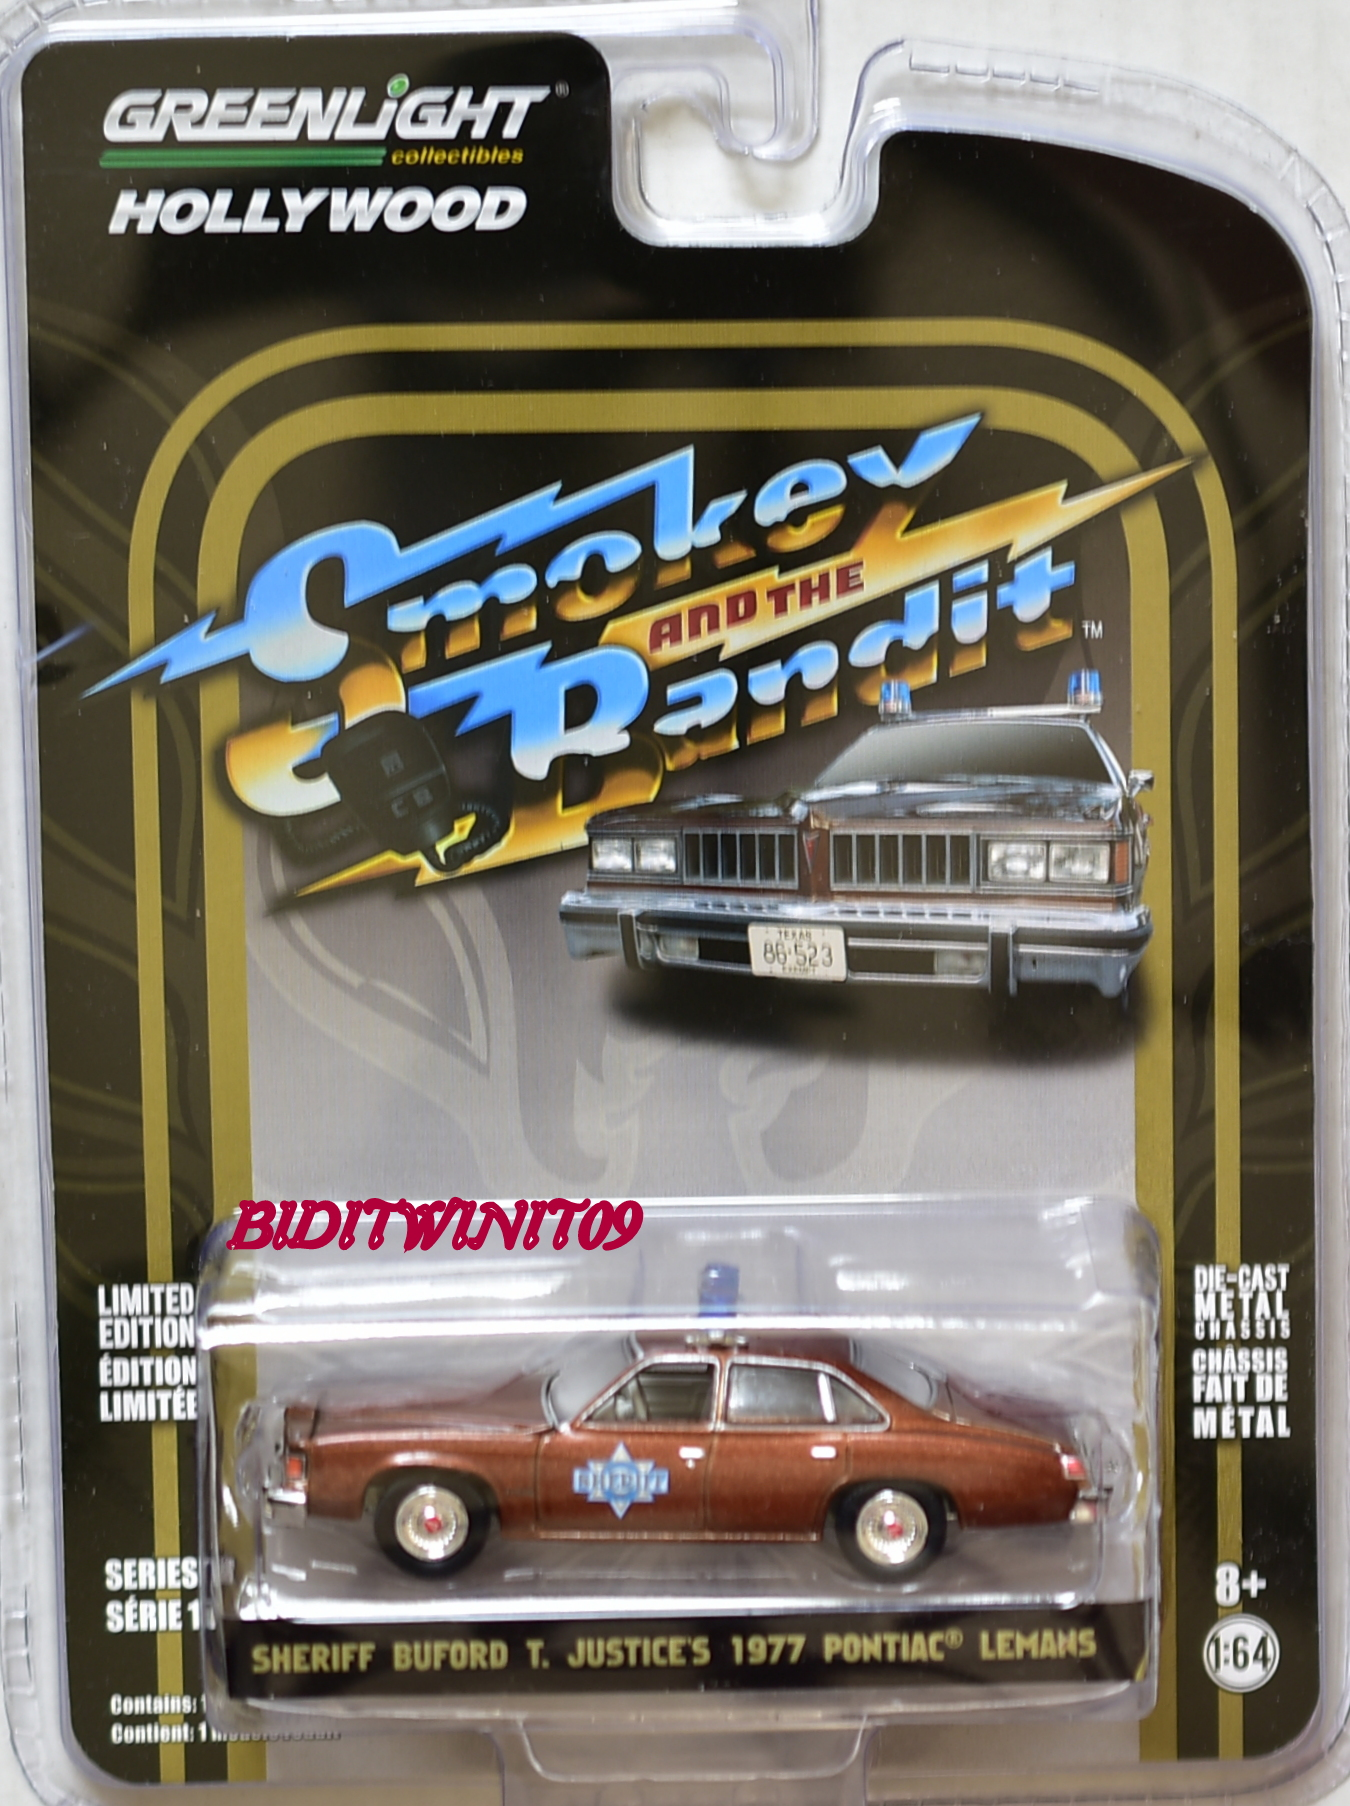 GREENLIGHT HOLLYWOOD SERIES 18 SHERIFF BUFORD T. JUSTICES 1977 PONTIAC LEMANS